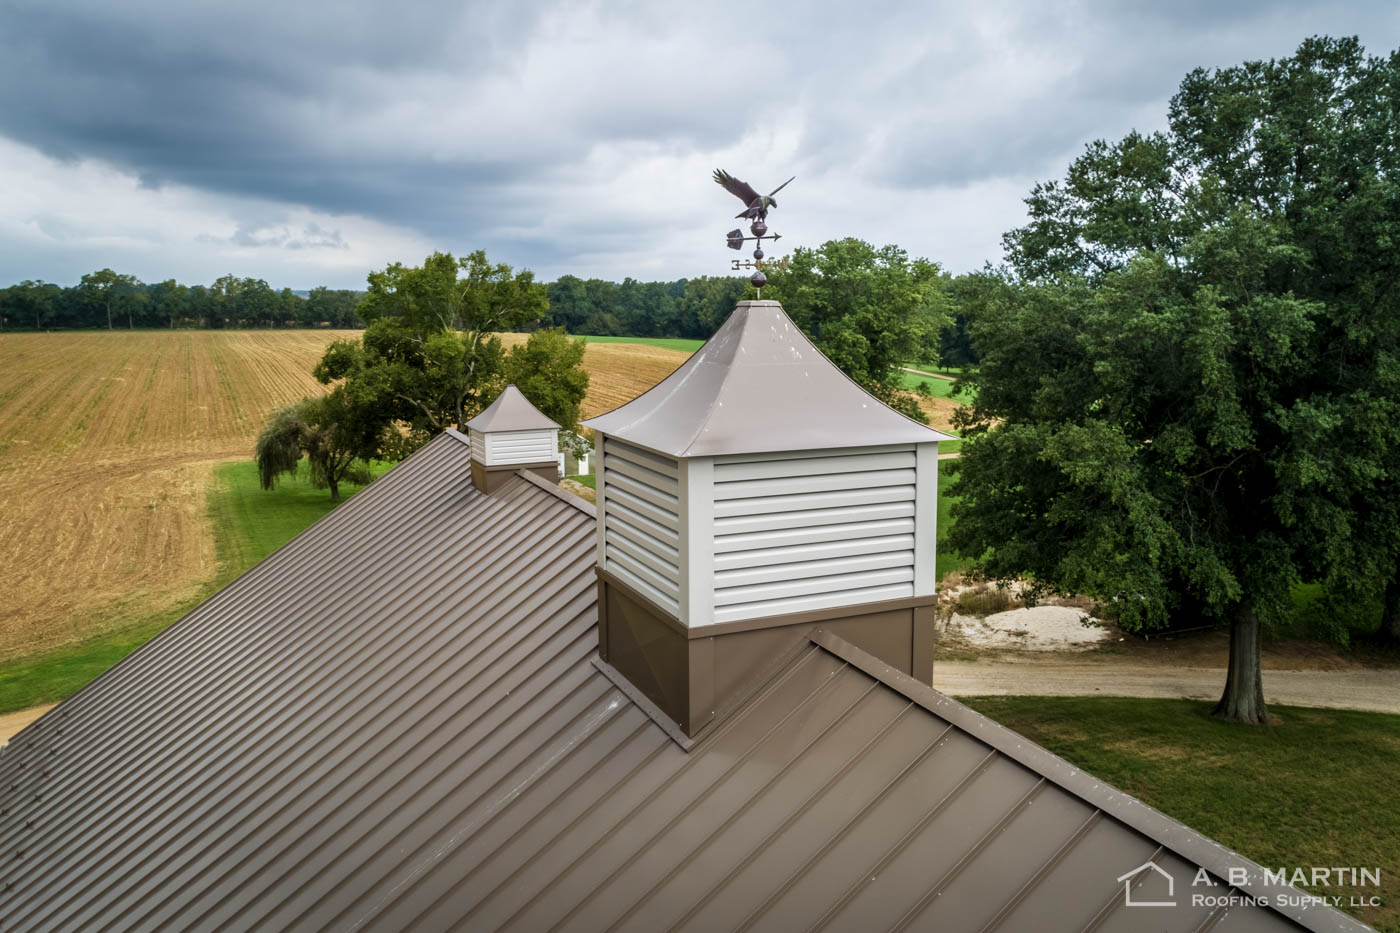 8 Ft Cupola On Maryland Bank Barn A B Martin Roofing